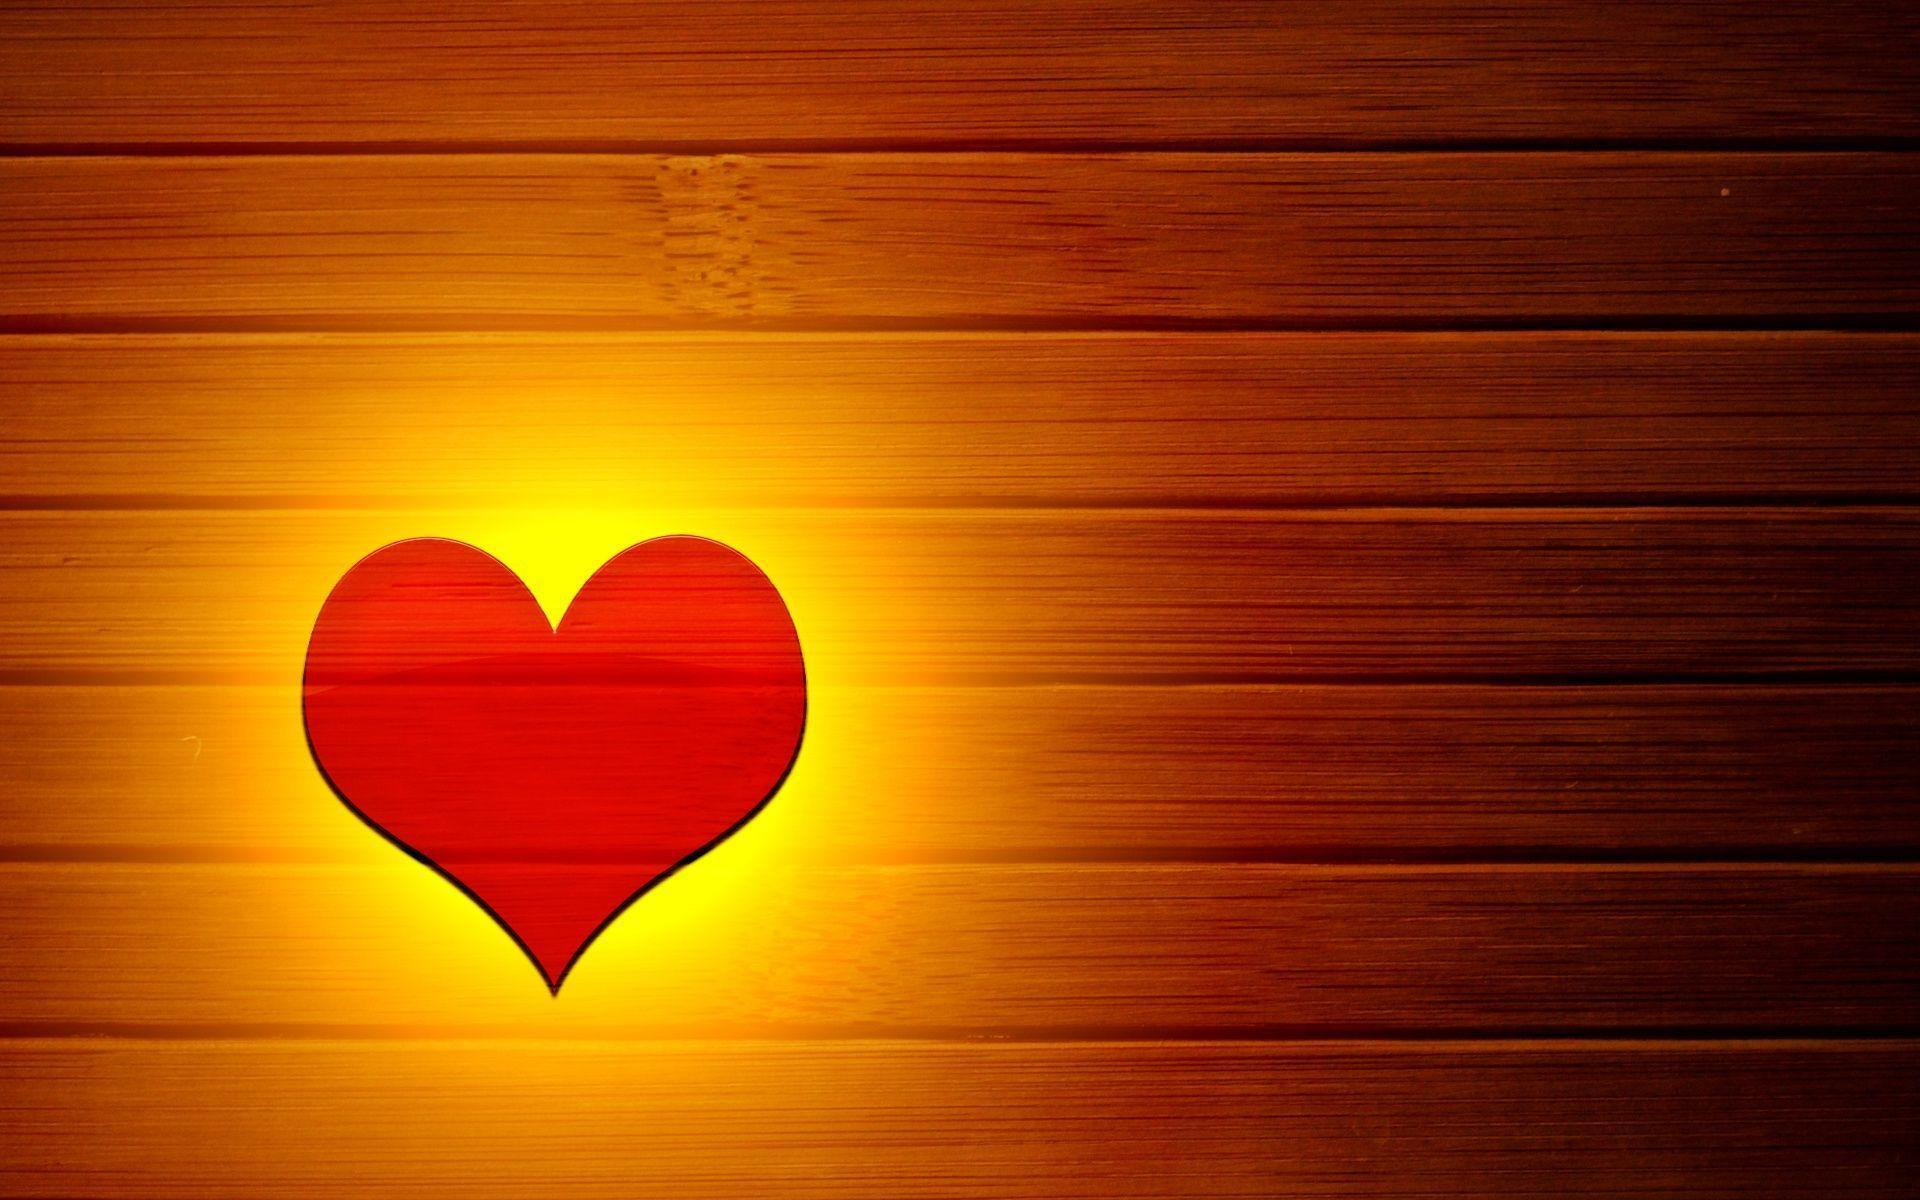 Love Wallpapers cave : Love Wallpaper Backgrounds - Wallpaper cave